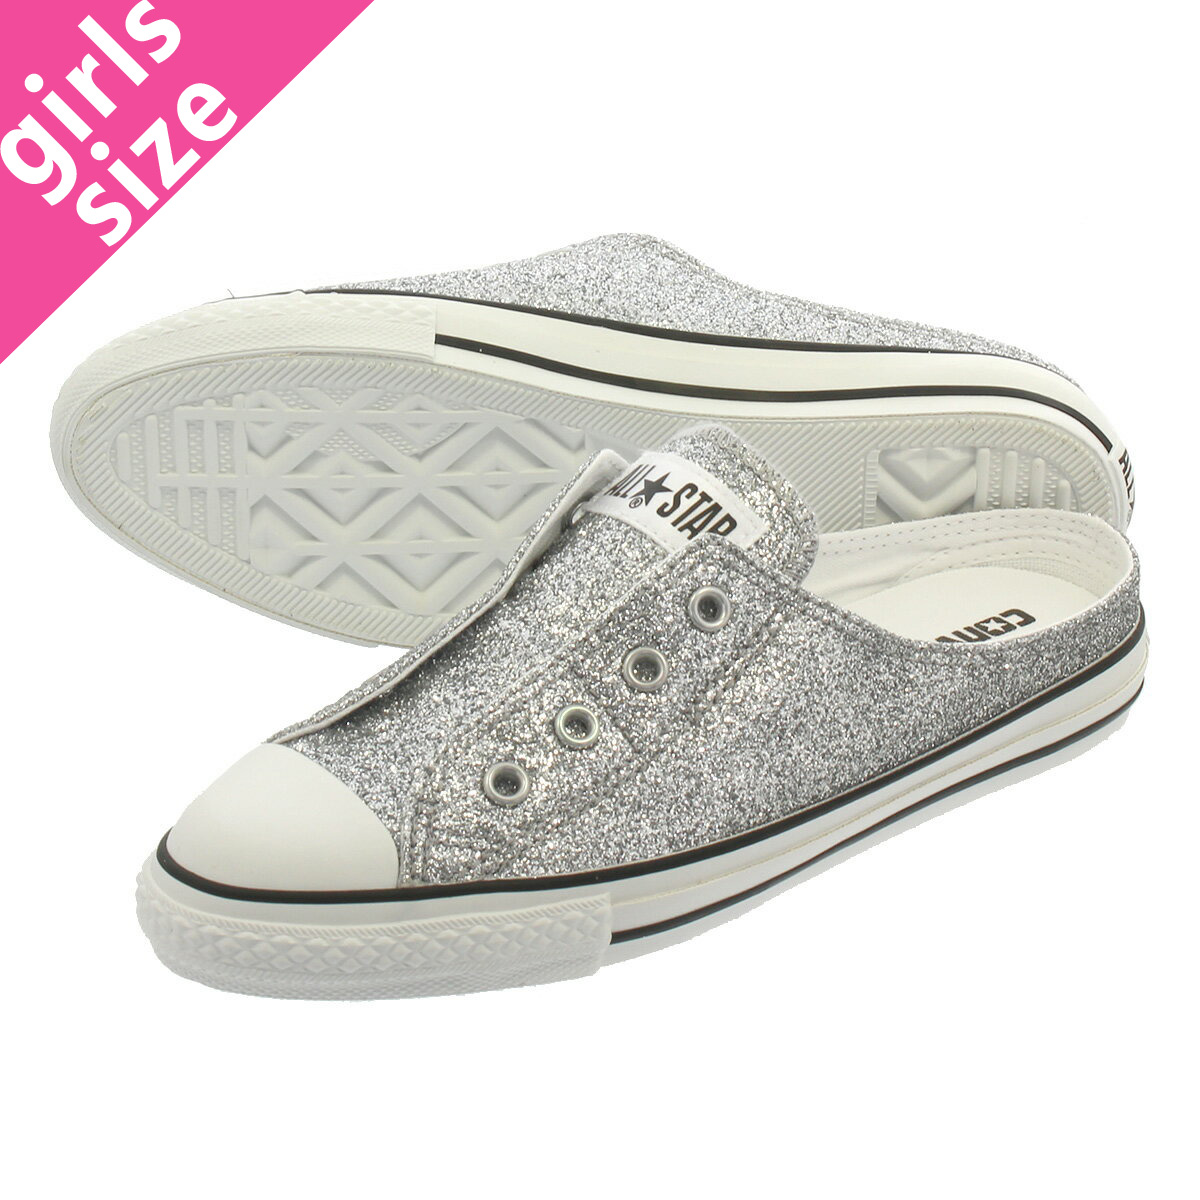 5efd9043d4d LOWTEX PLUS: CONVERSE ALL STAR S GLITTERY MULE SLIP OX Converse all-stars S  グリッタリーミュールスリップ OX SILVER 31300130 | Rakuten Global Market